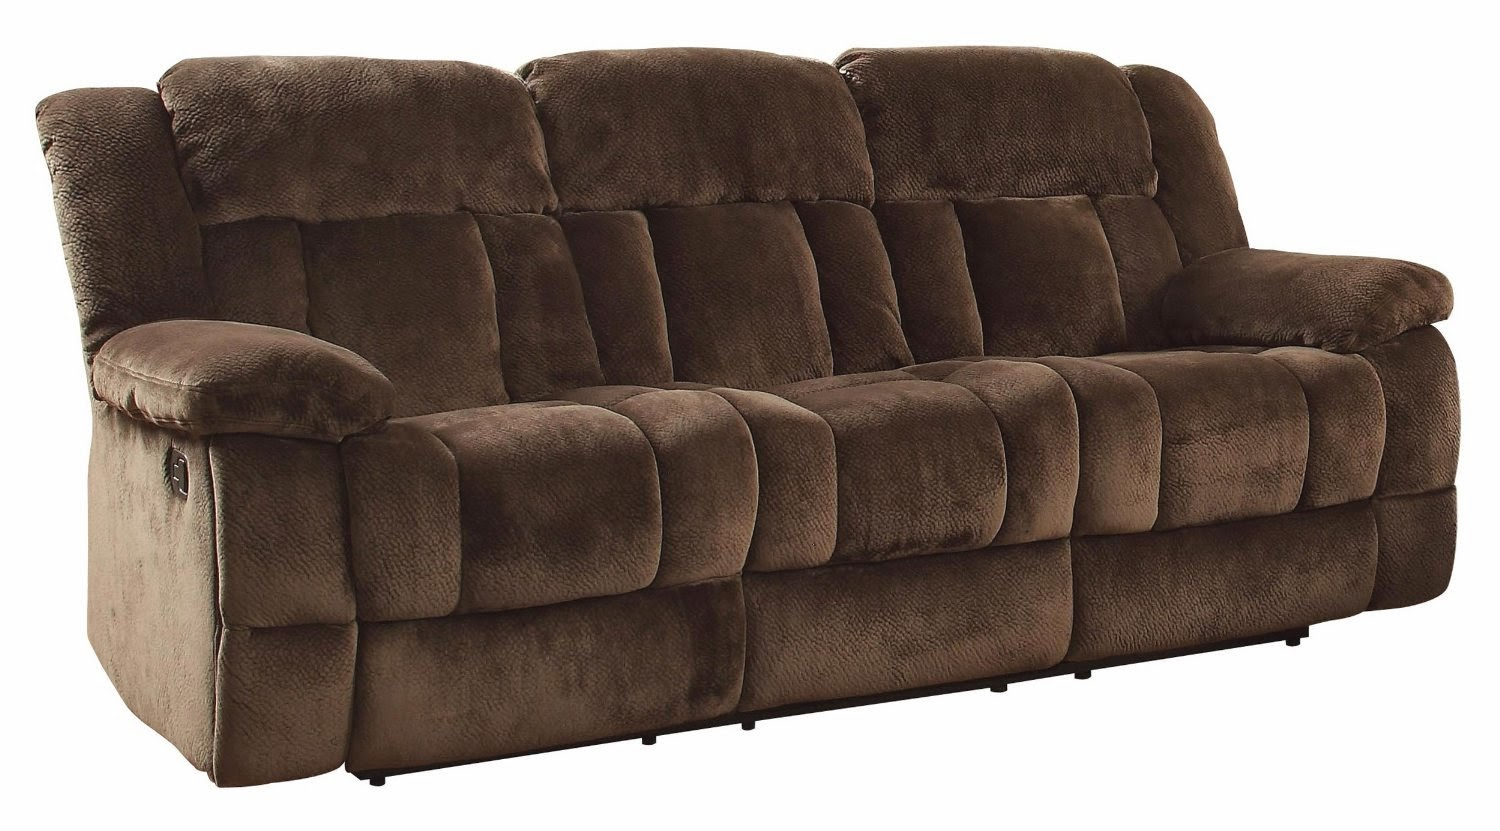 Cheap reclining sofas sale fabric recliner sofas sale for Couches and sofas for sale